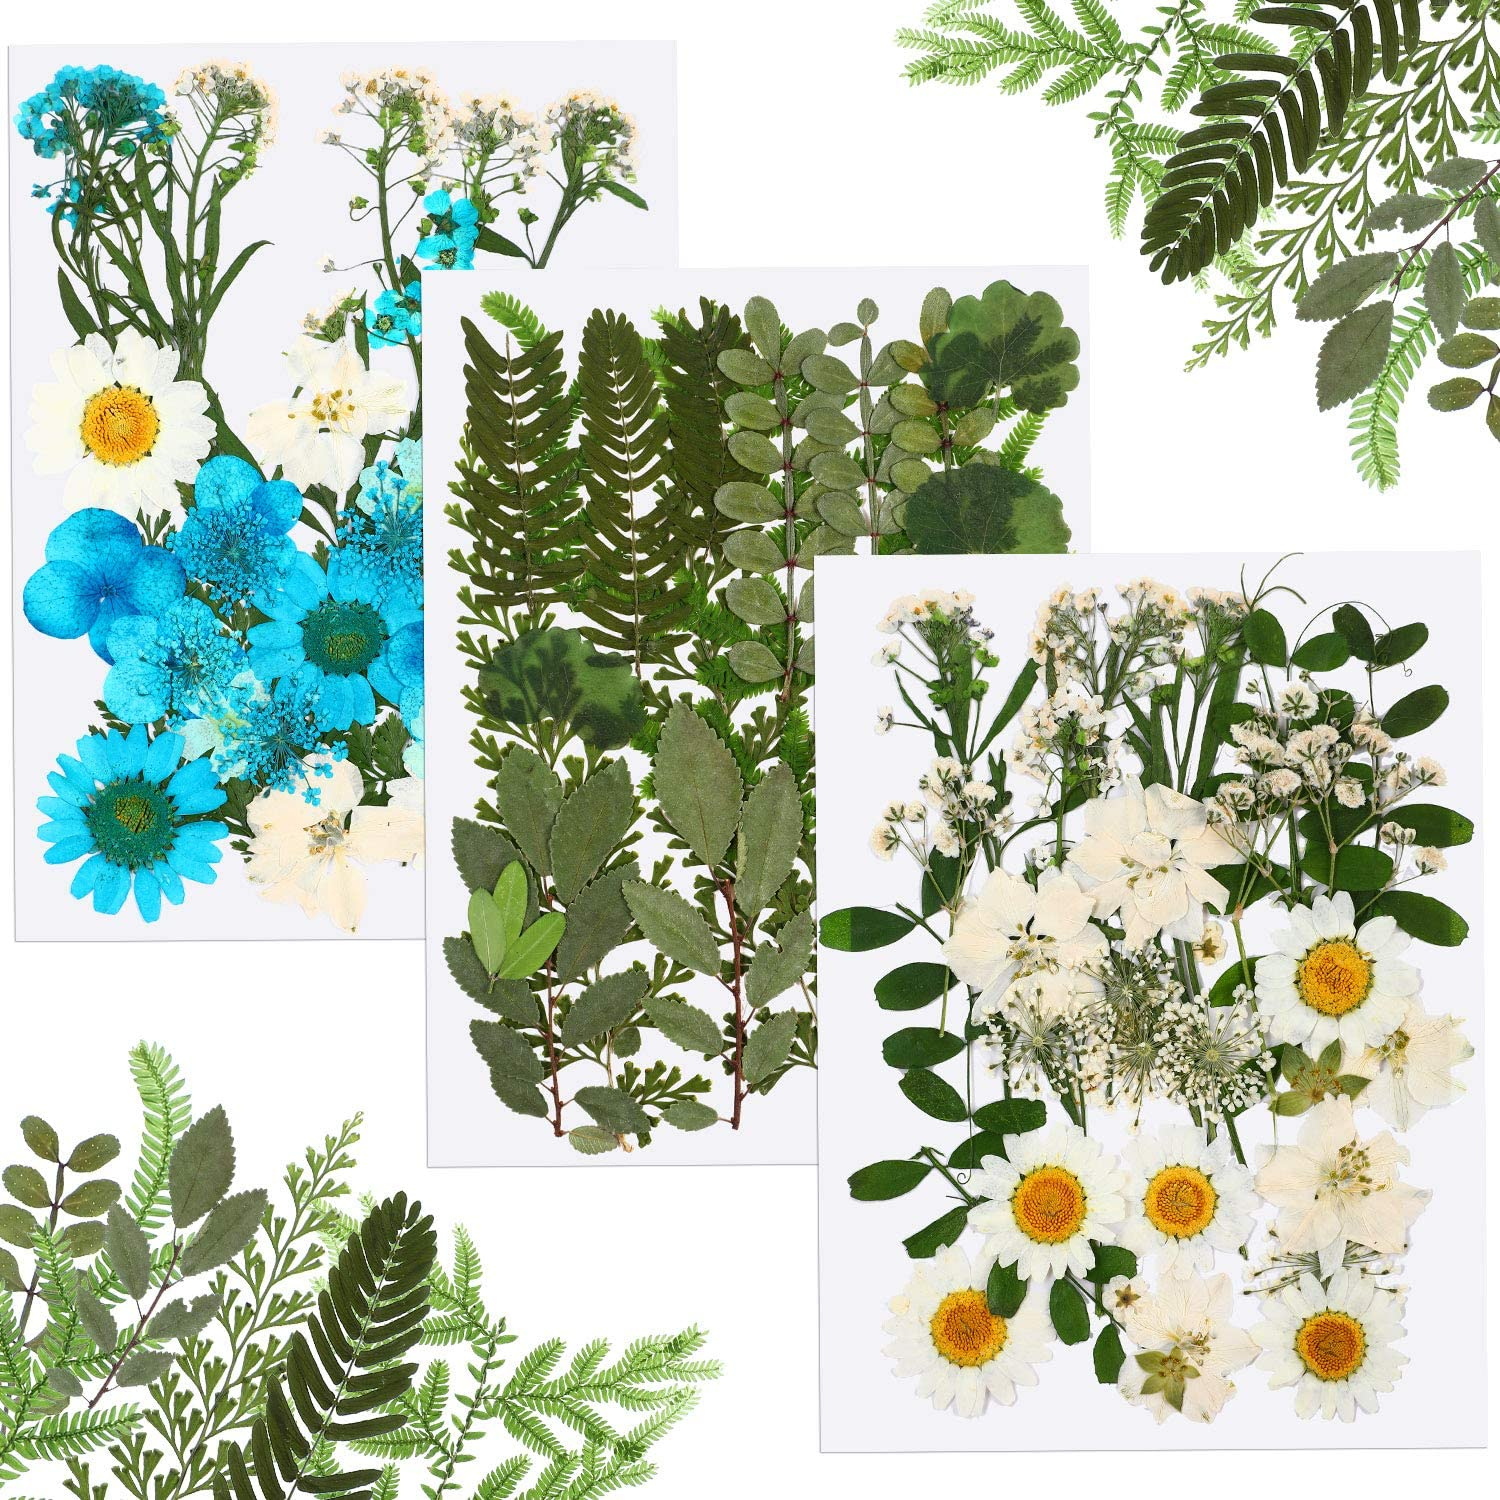 57 Pieces Real Dried Pressed Flowers Assorted Real Dried Pressed Leaves Natural Dry Leaves for Pressed Leaf Art Craft DIY Embellishment Decorations 29 Styles